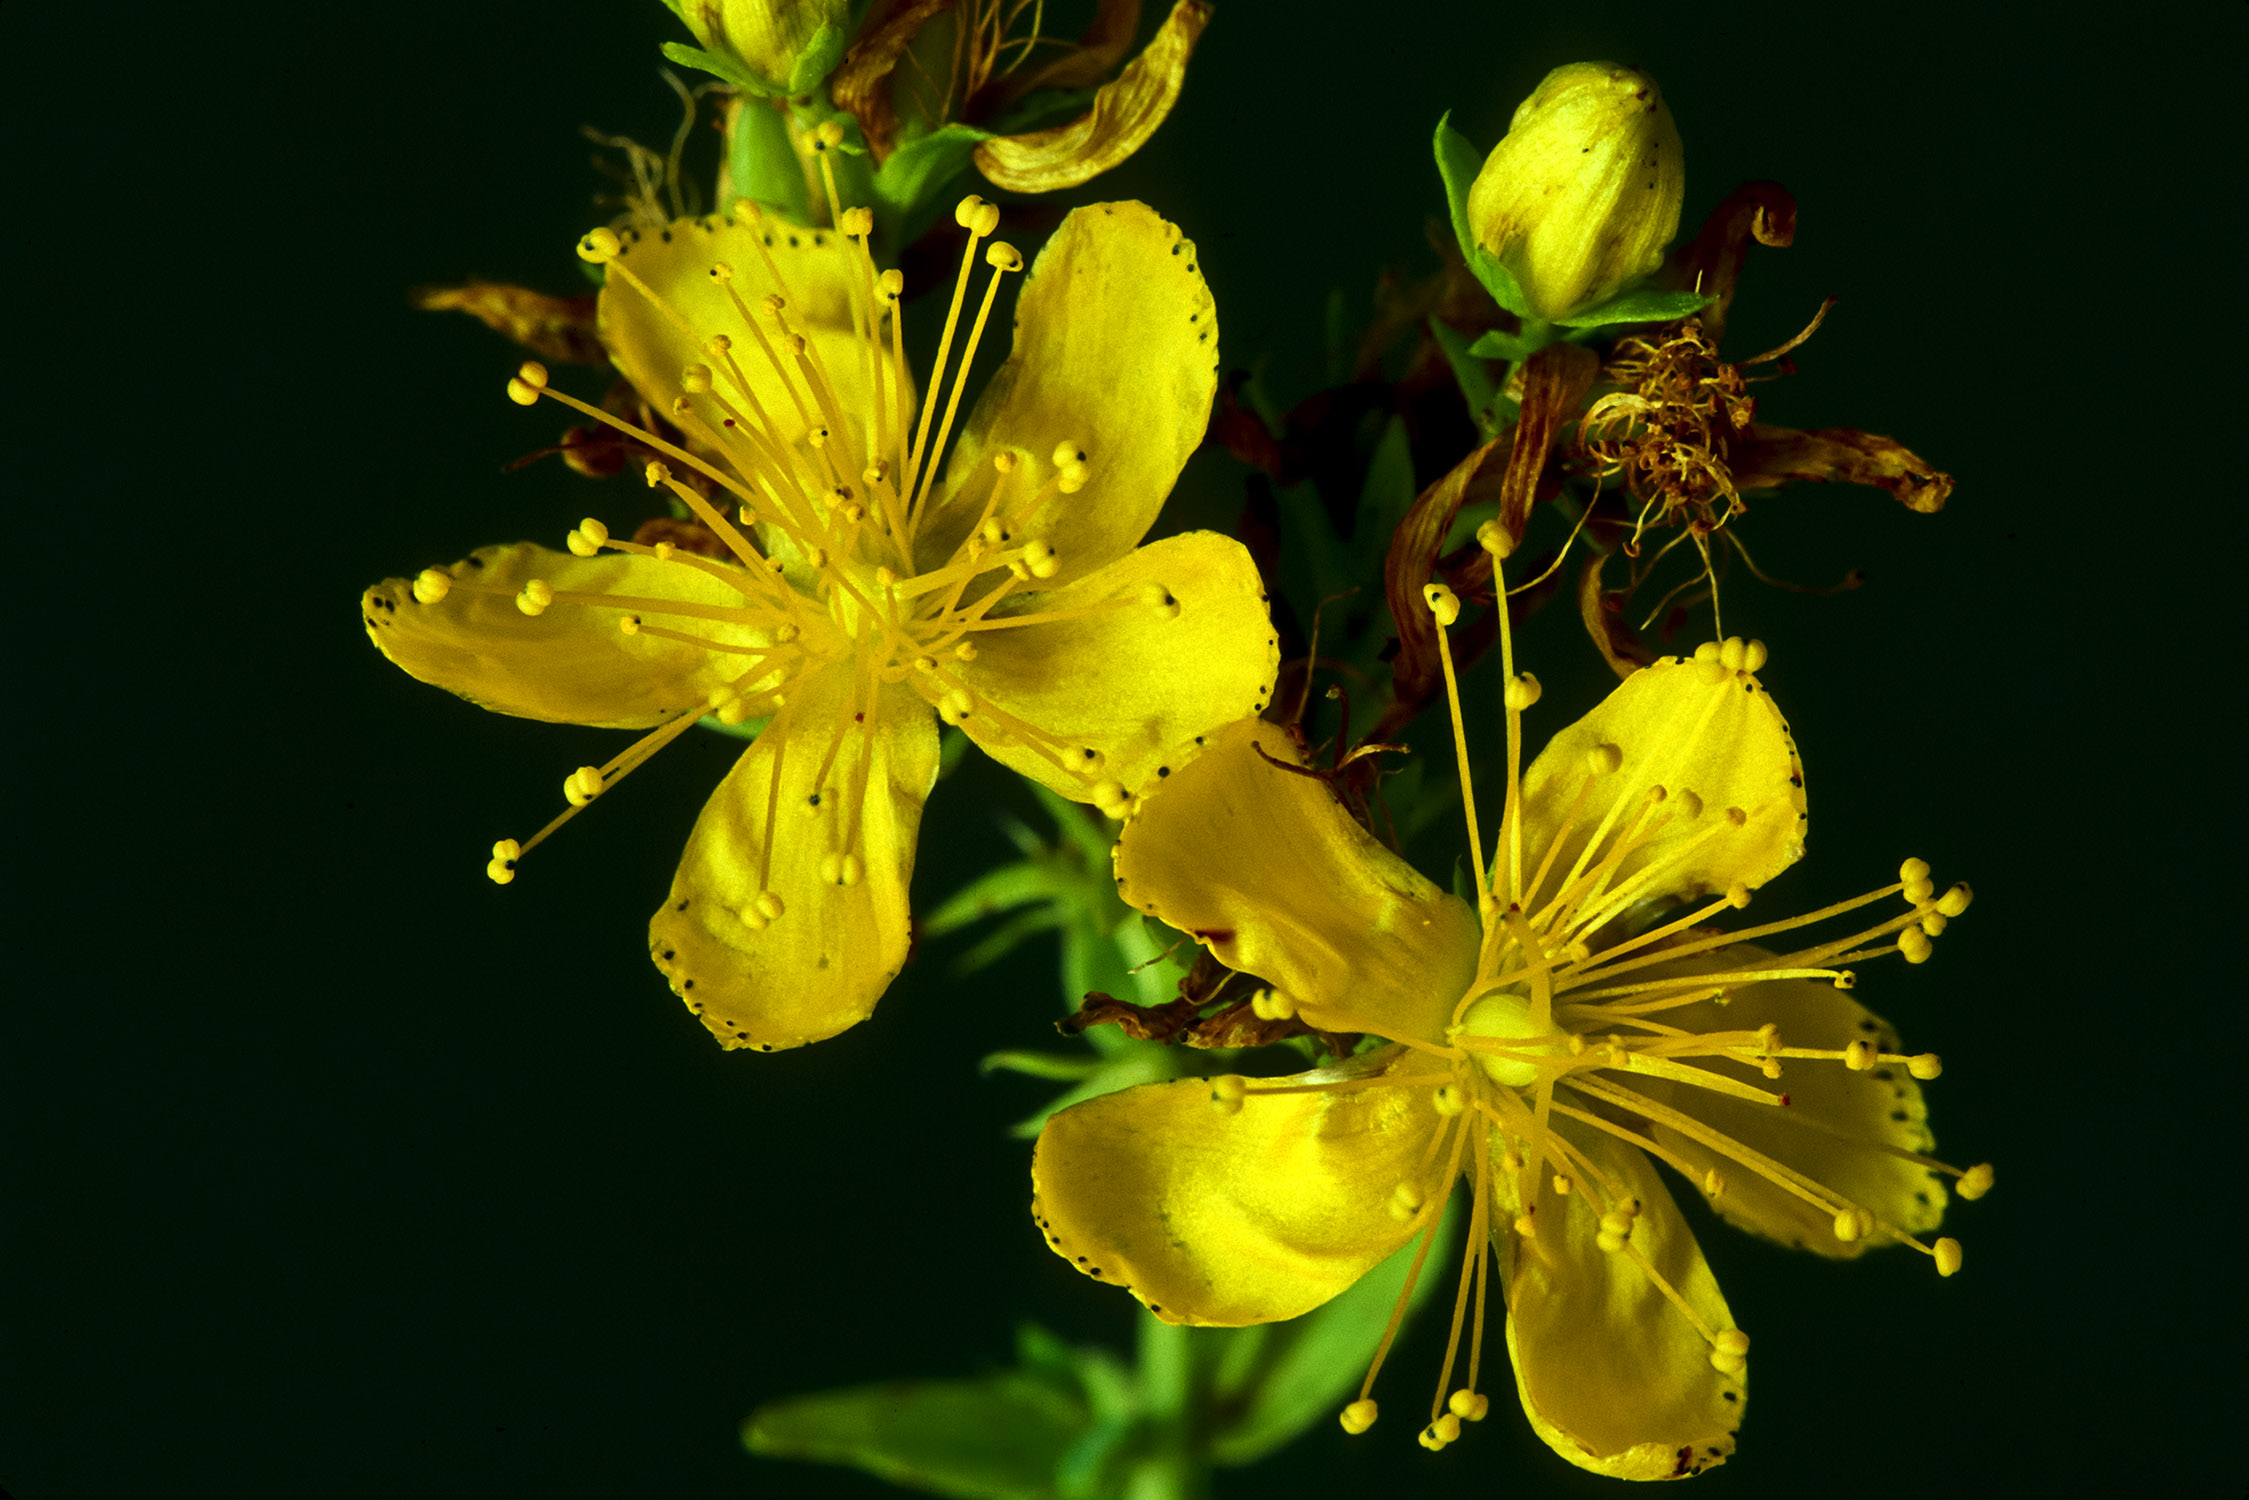 St. Johns Wort Stock Photos and Pictures Getty Images St john's wort photo